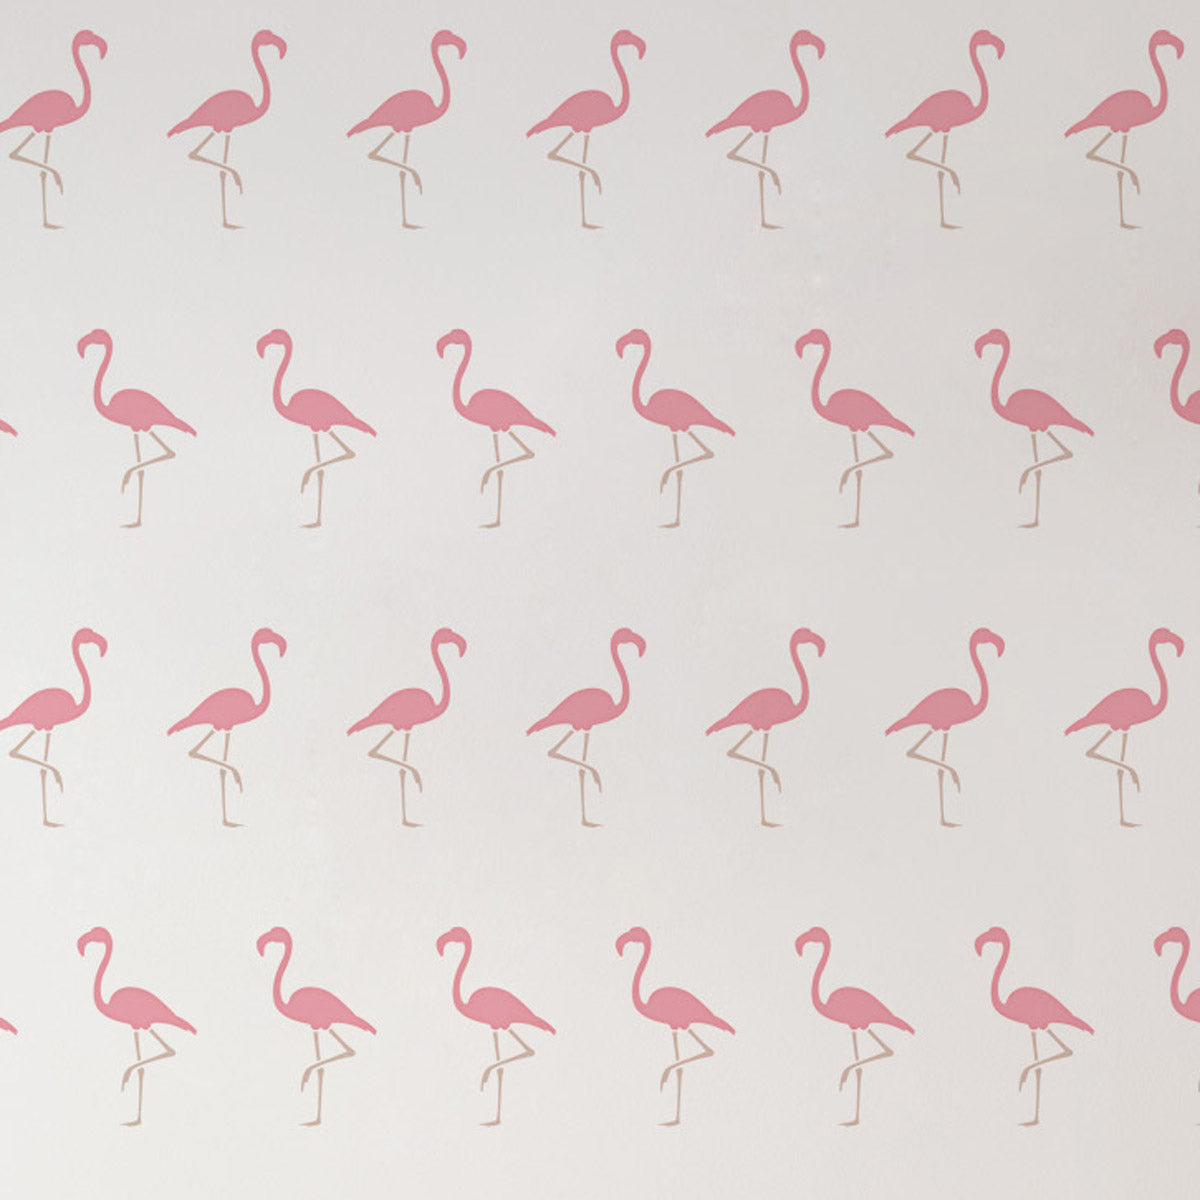 CraftStar Flamingo Wall Stencil - Allover Repeating Pattern Close Up View